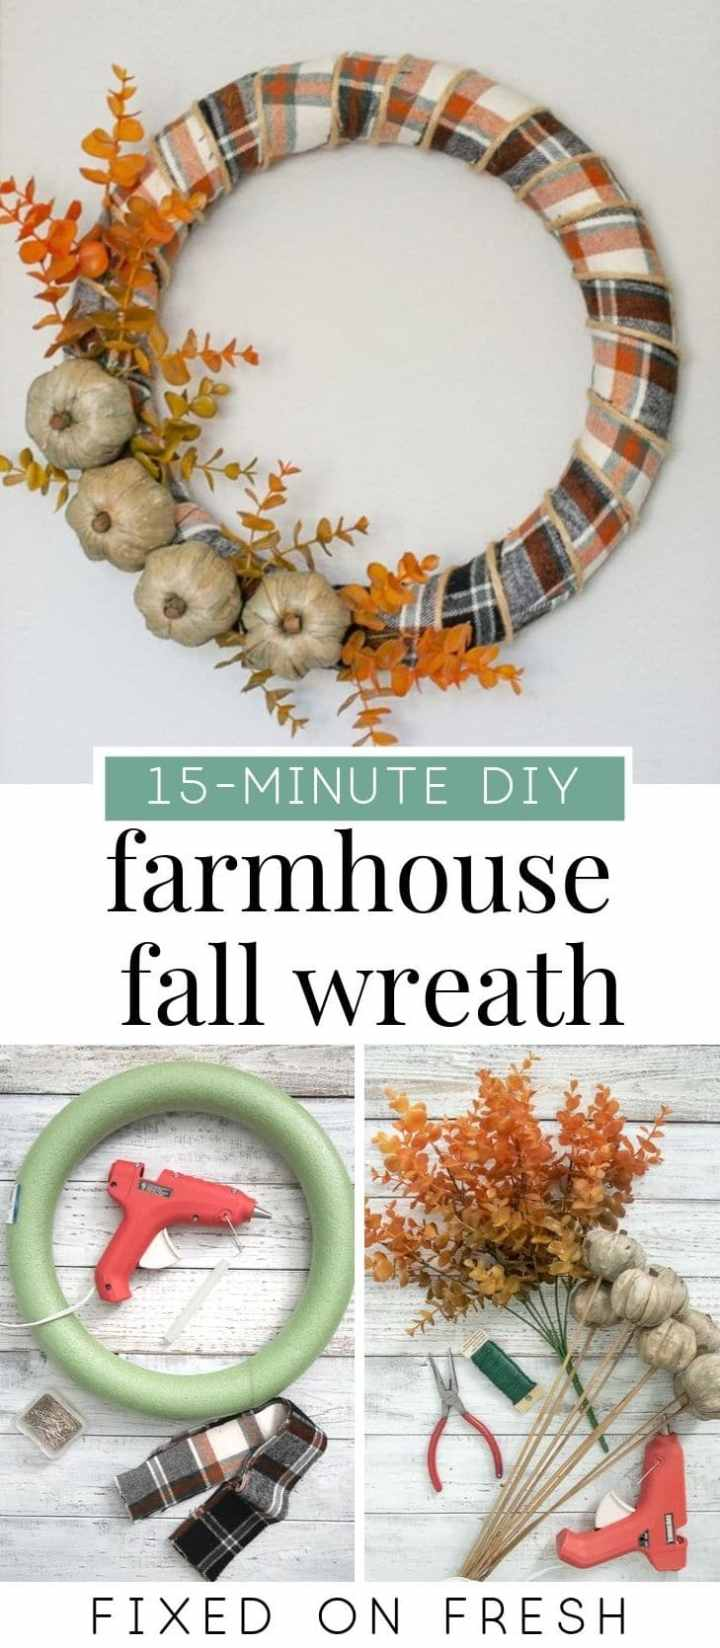 Learn how to make a farmhouse inspired fall wreath using leftover fabric or ribbon and a couple stems fall stems and styrofoam pumpkins. this simple project can be made in 15 minutes and is budget friendly! #diy #fall #wreath